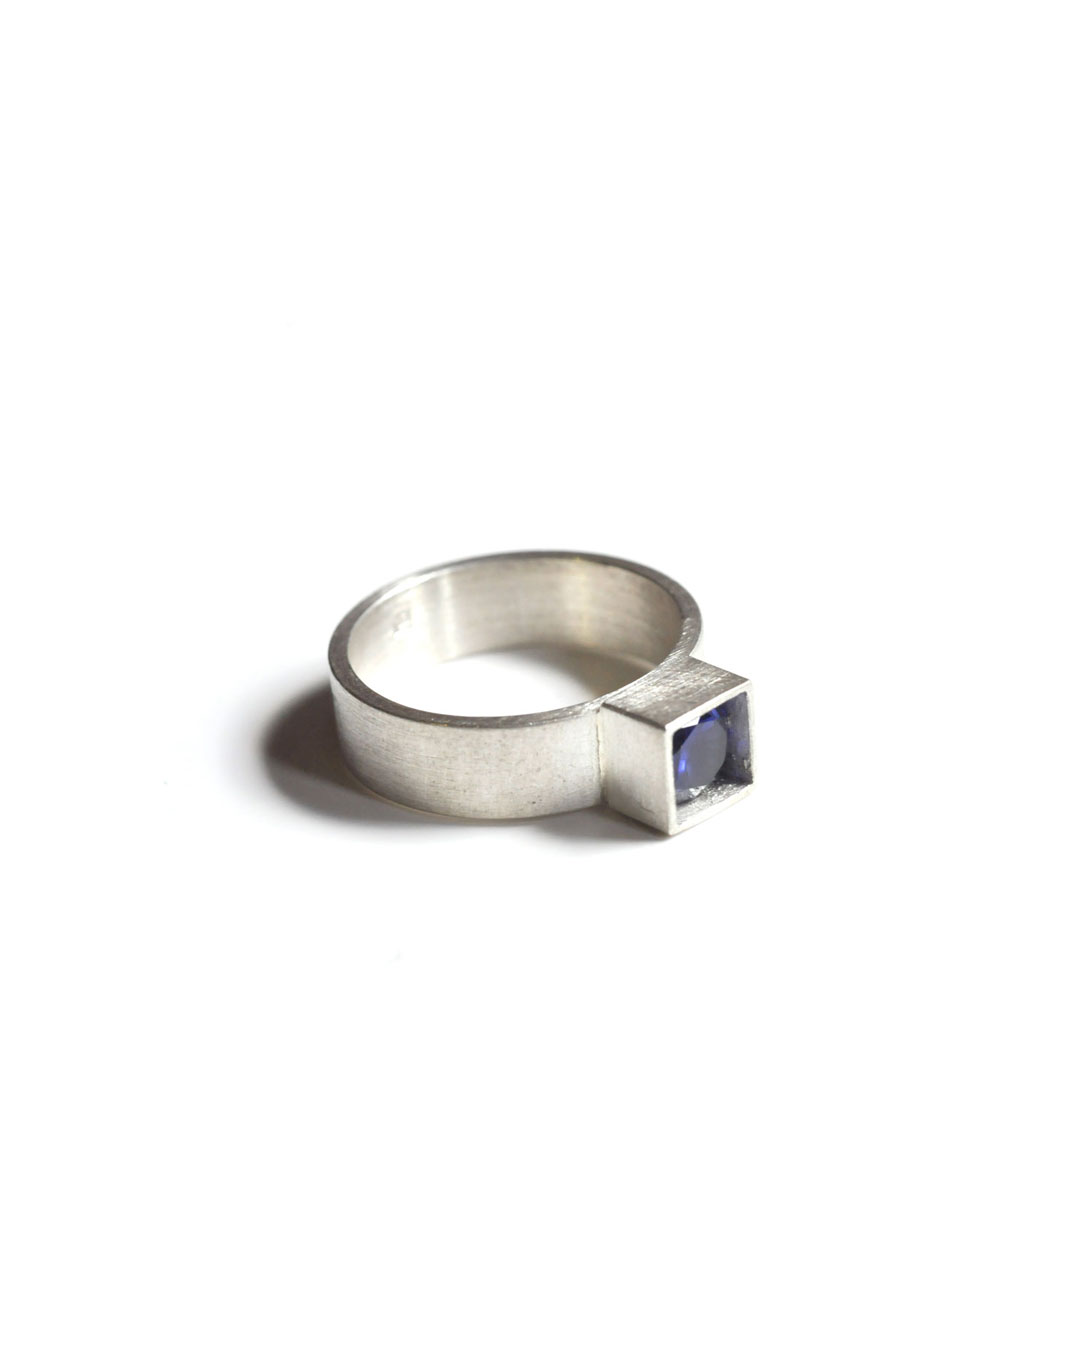 Herman Hermsen, untitled, 2005, ring; silver, synthetic stone, 23 x 19 x 5 mm, €190